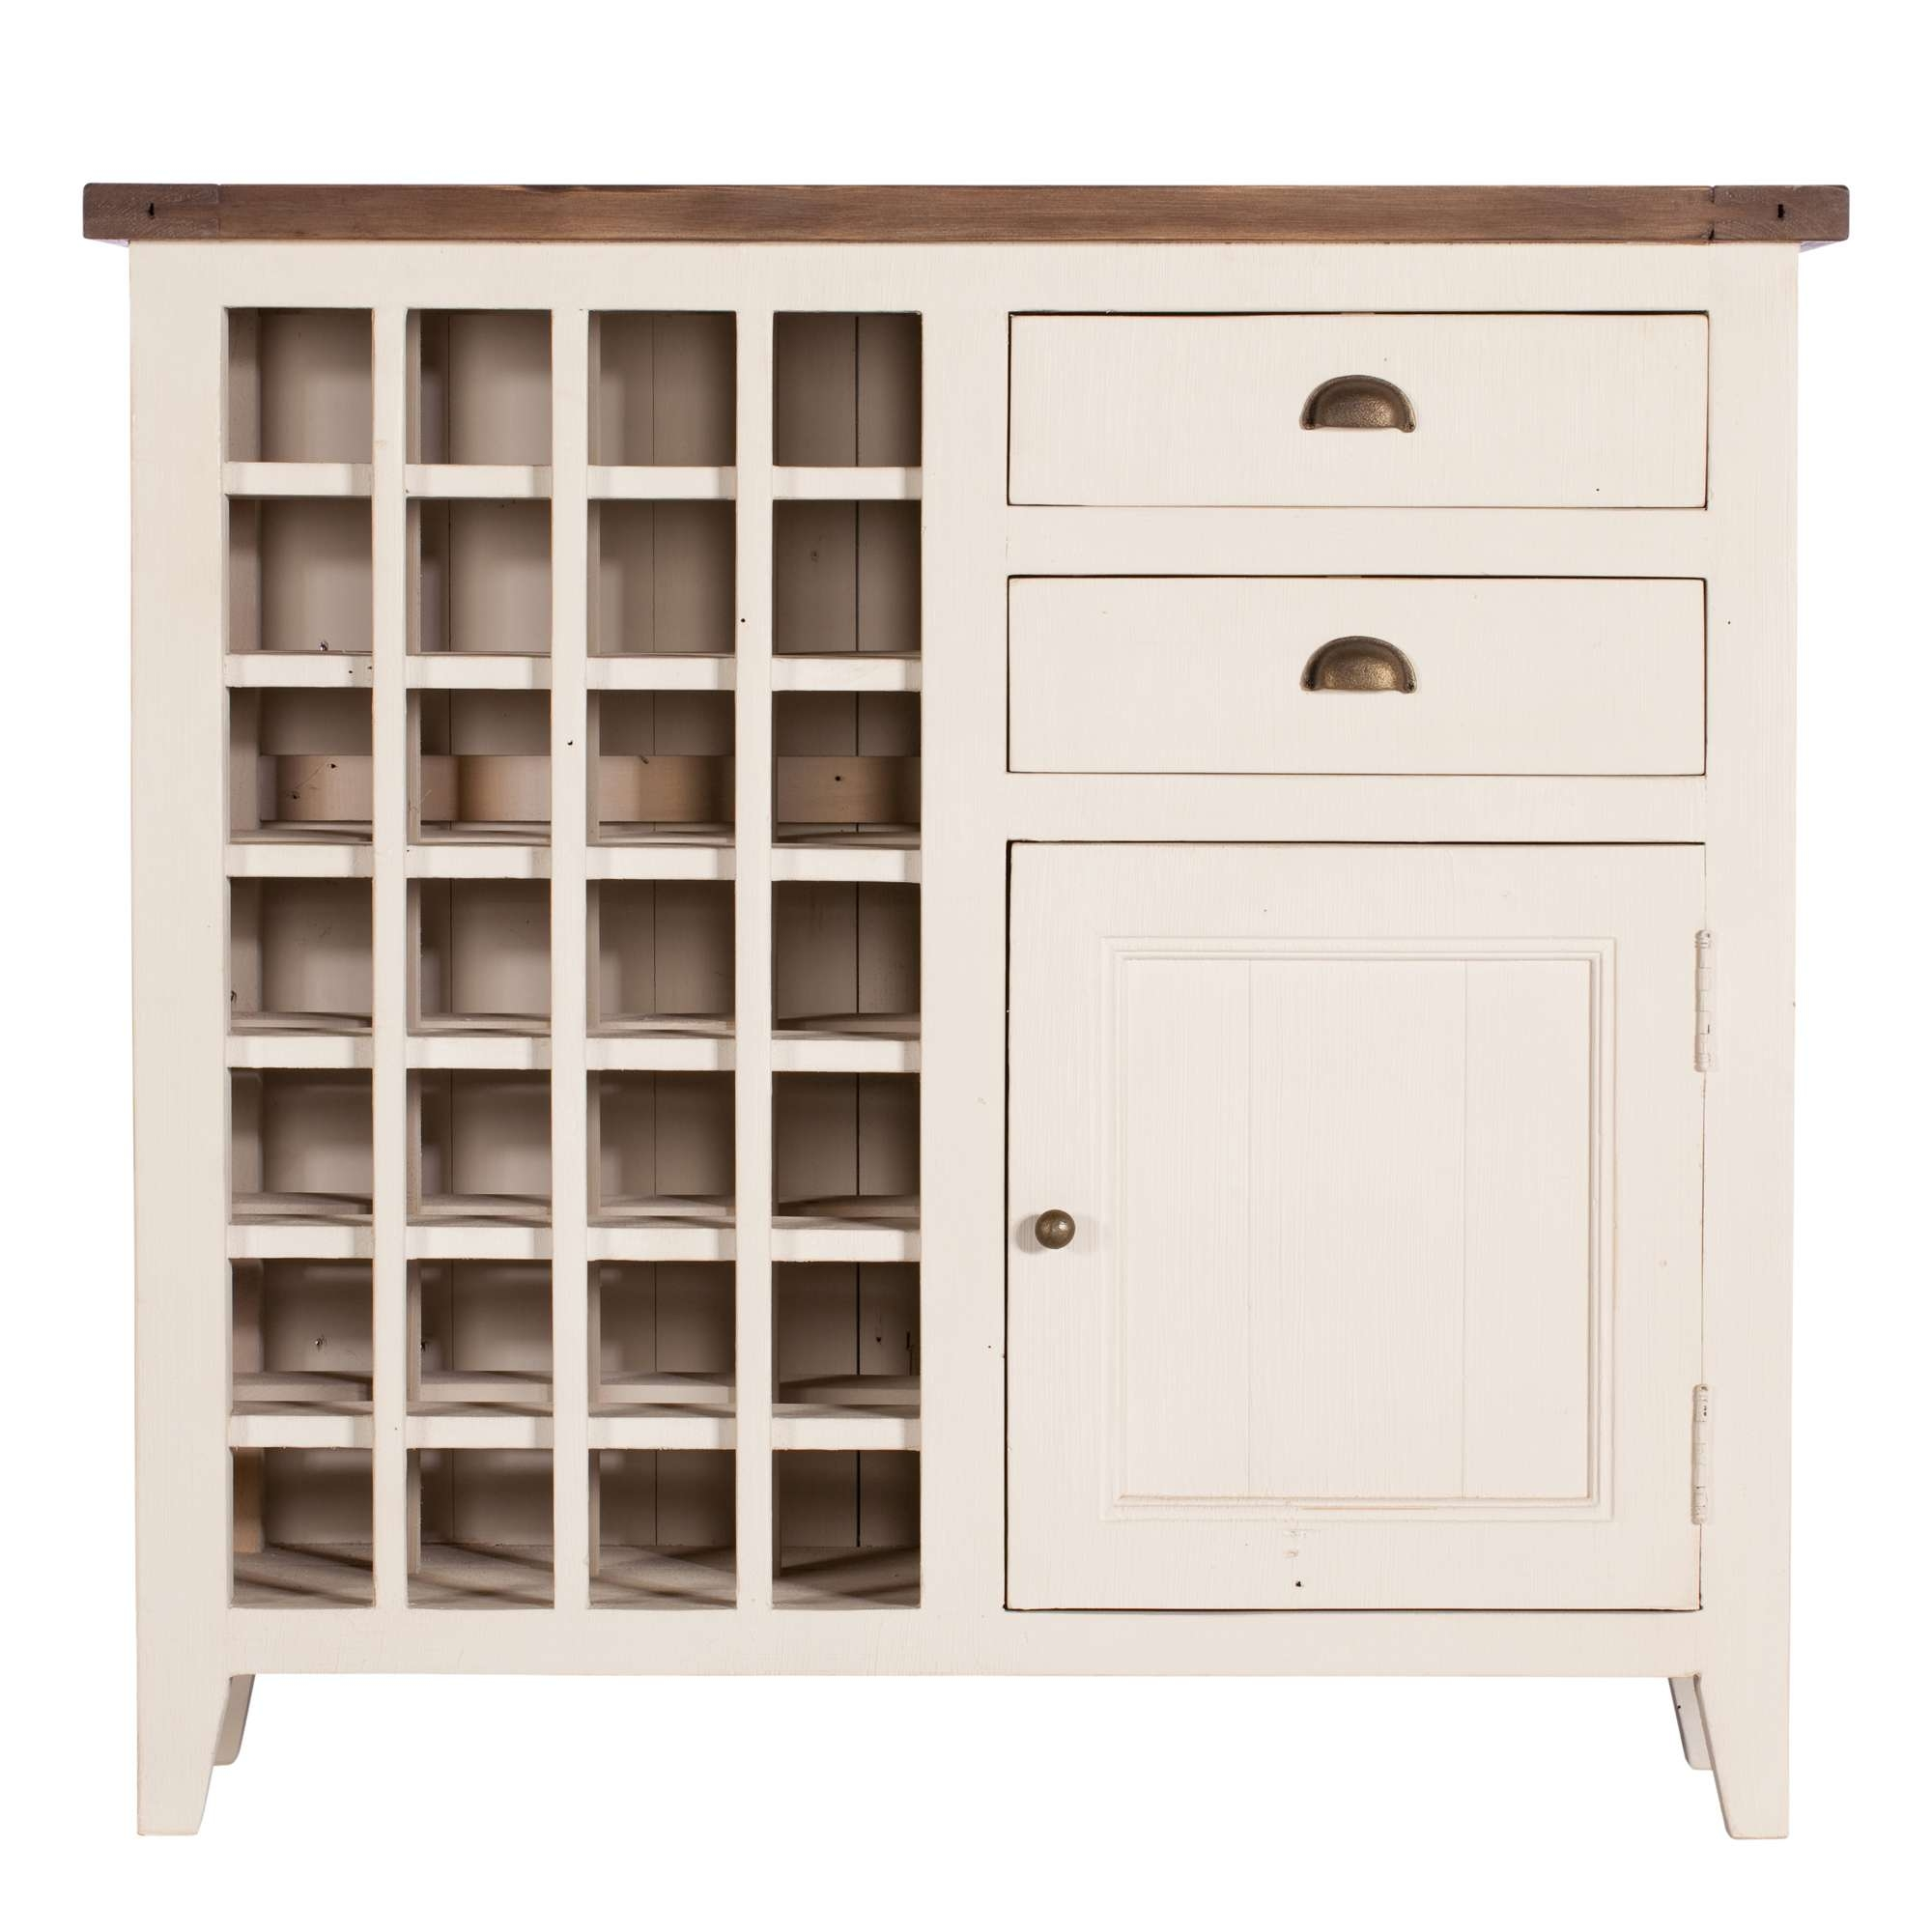 Aldeburgh Wine Rack Sideboard | No 44 Furniture, Cobham Nr London For Sideboards With Wine Rack (View 1 of 20)